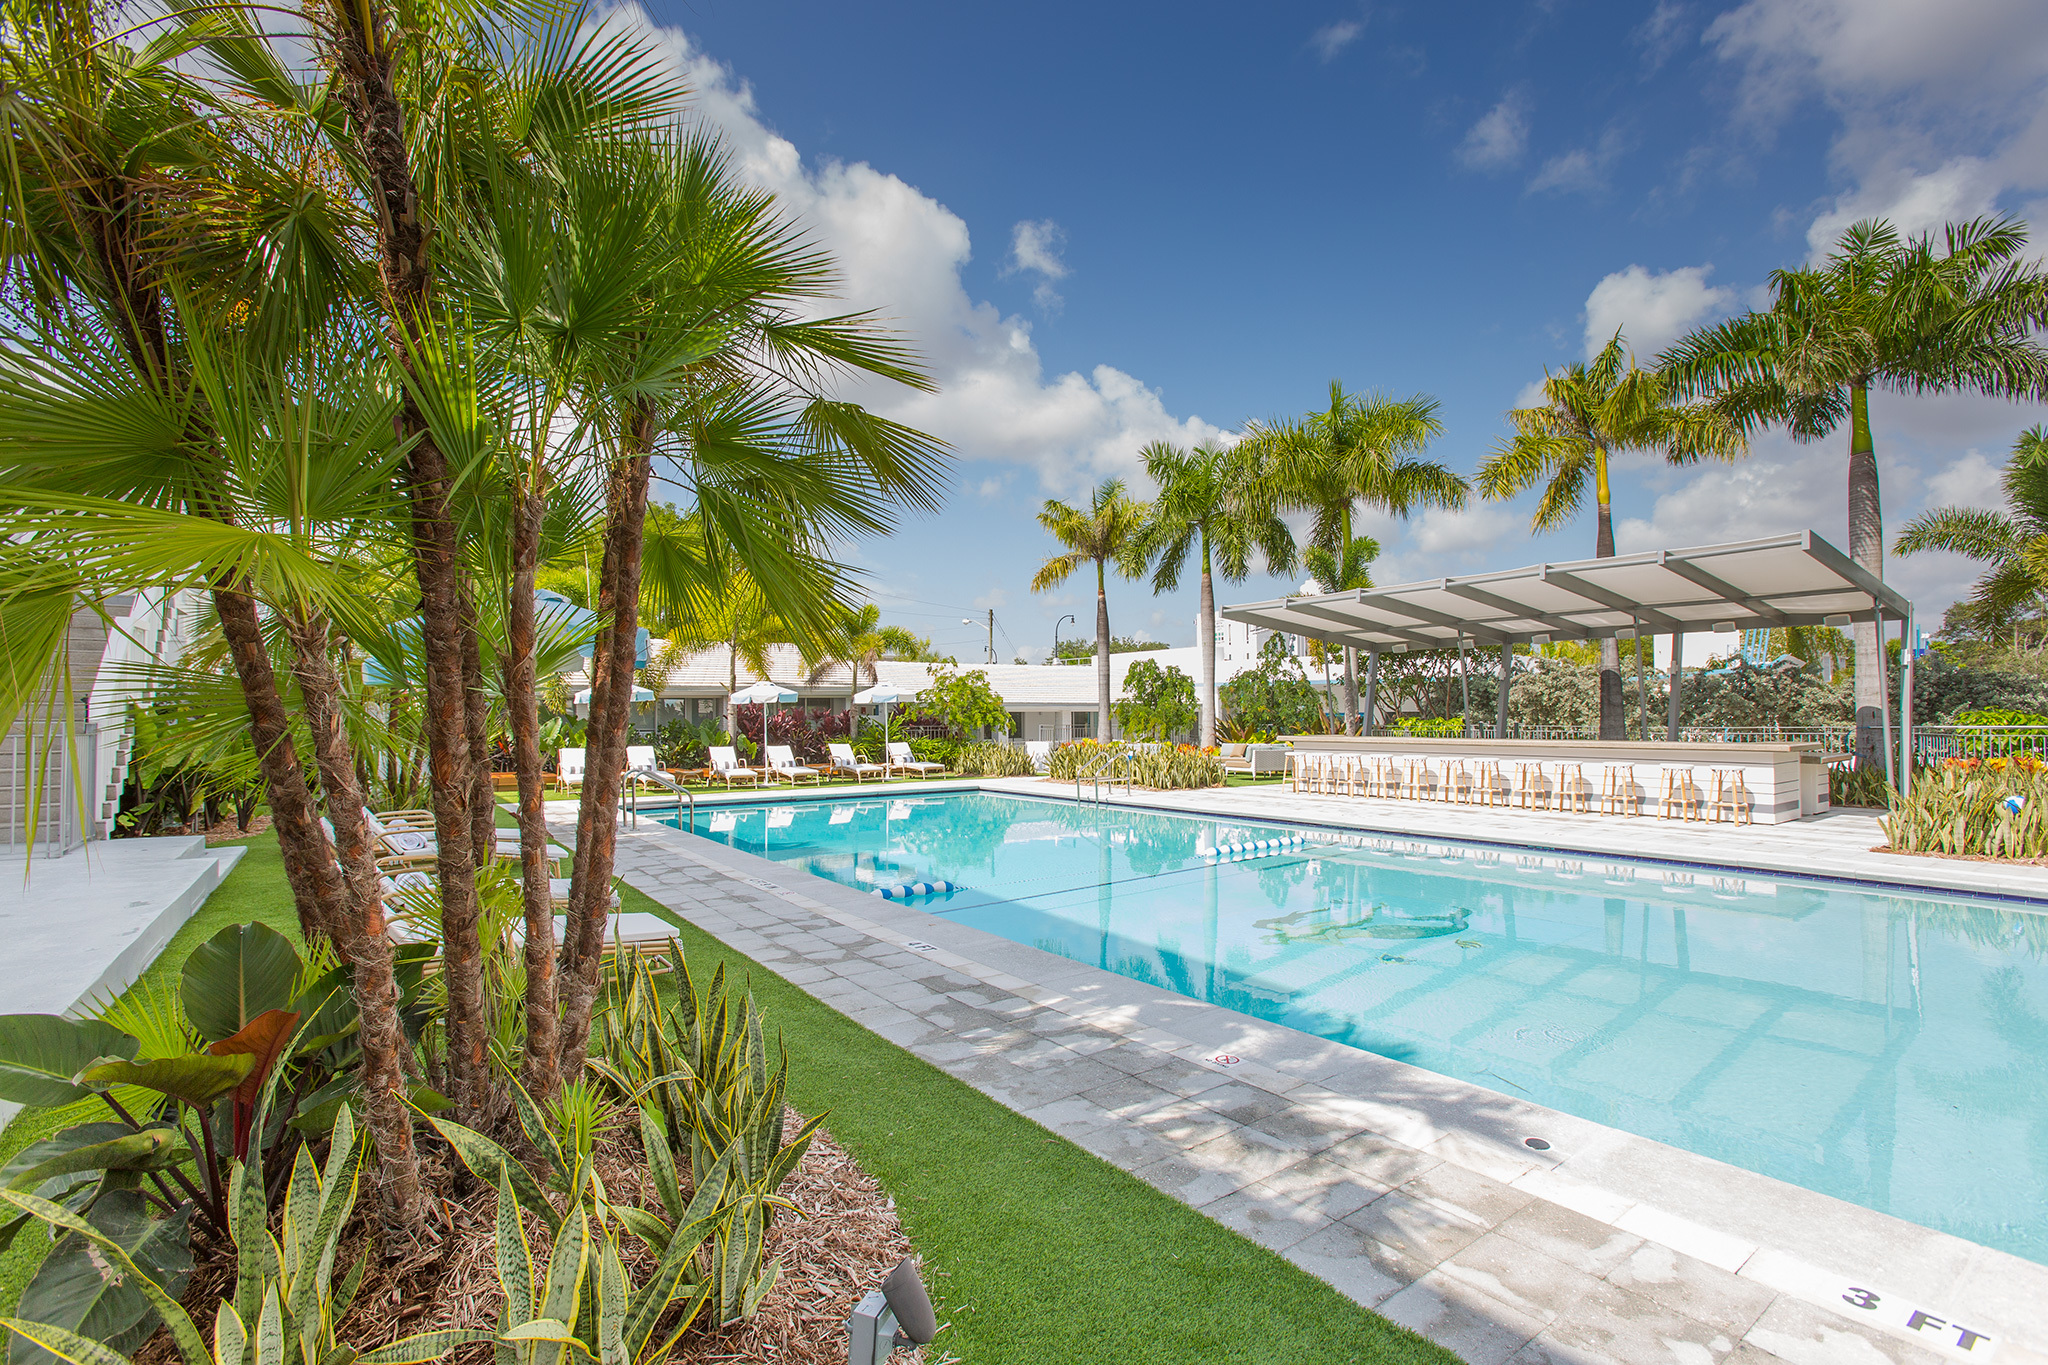 11 best swimming pools in miami for splashing and relaxing for Mississippi wind pool